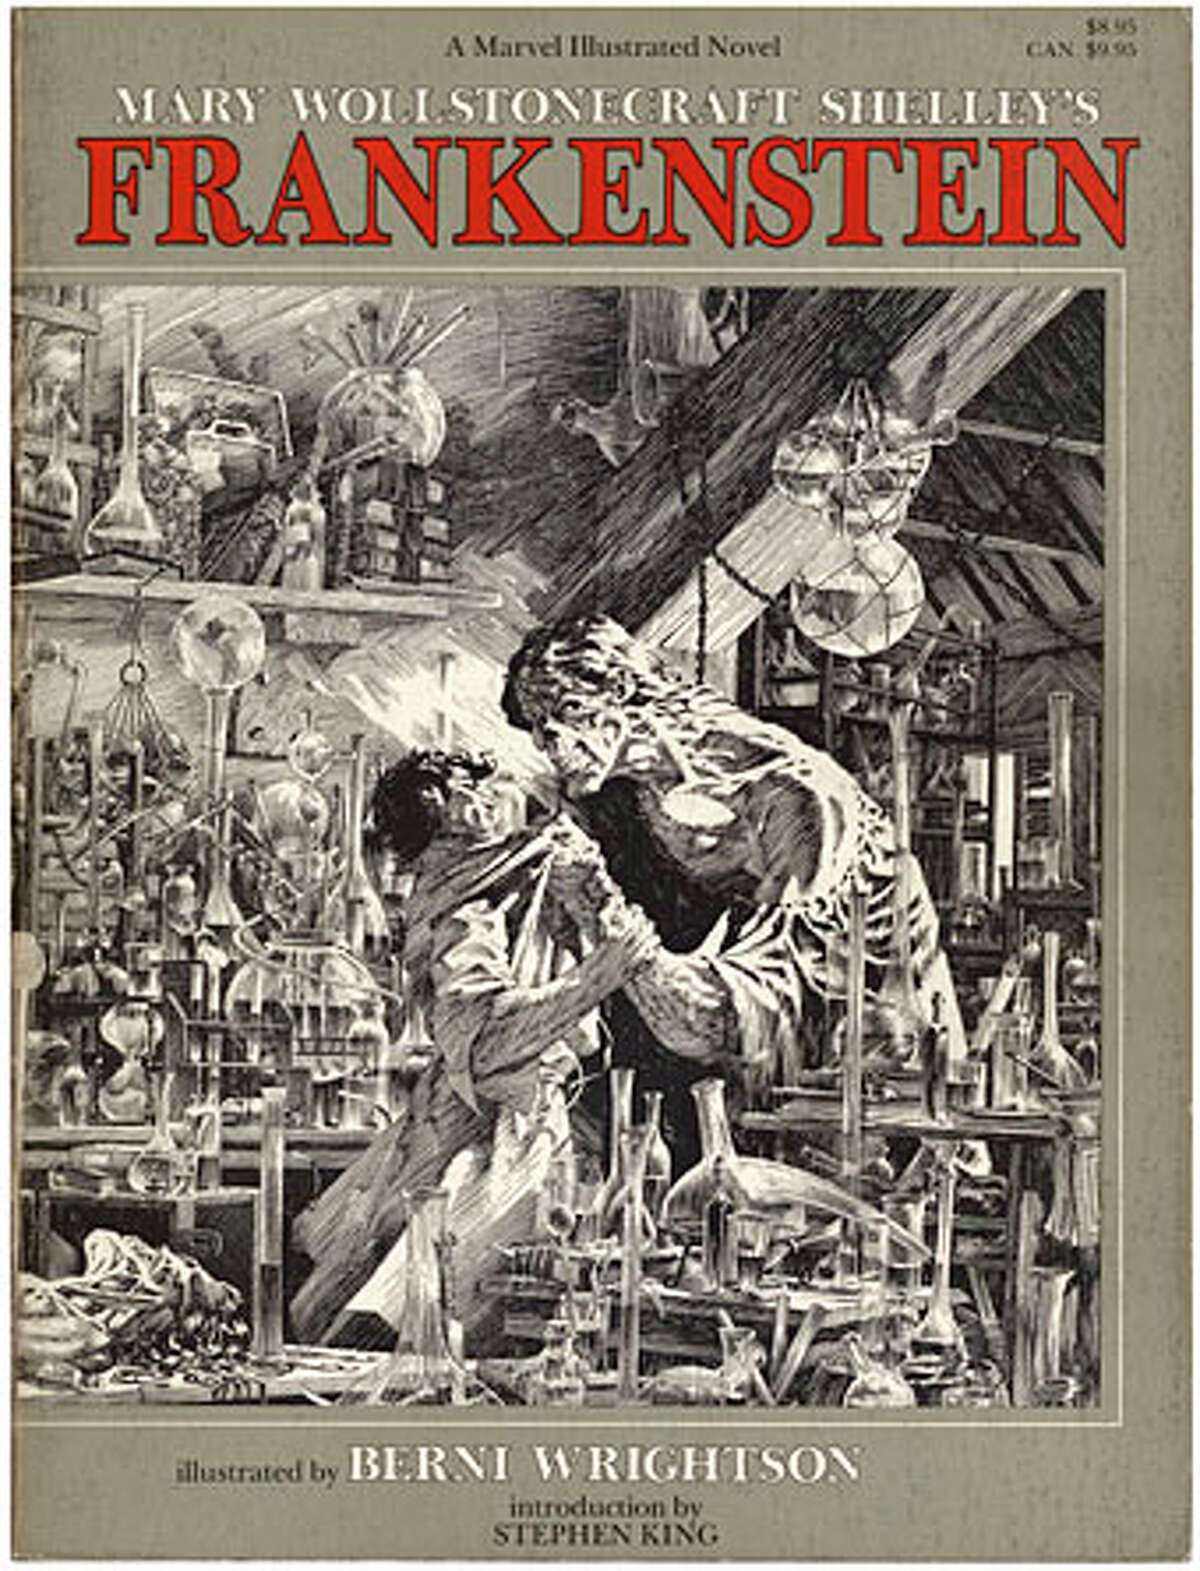 Mary Shelley's Frankenstein turns 200 this year. The Ridgefield Library is celebrating the anniversary with an array of programs.